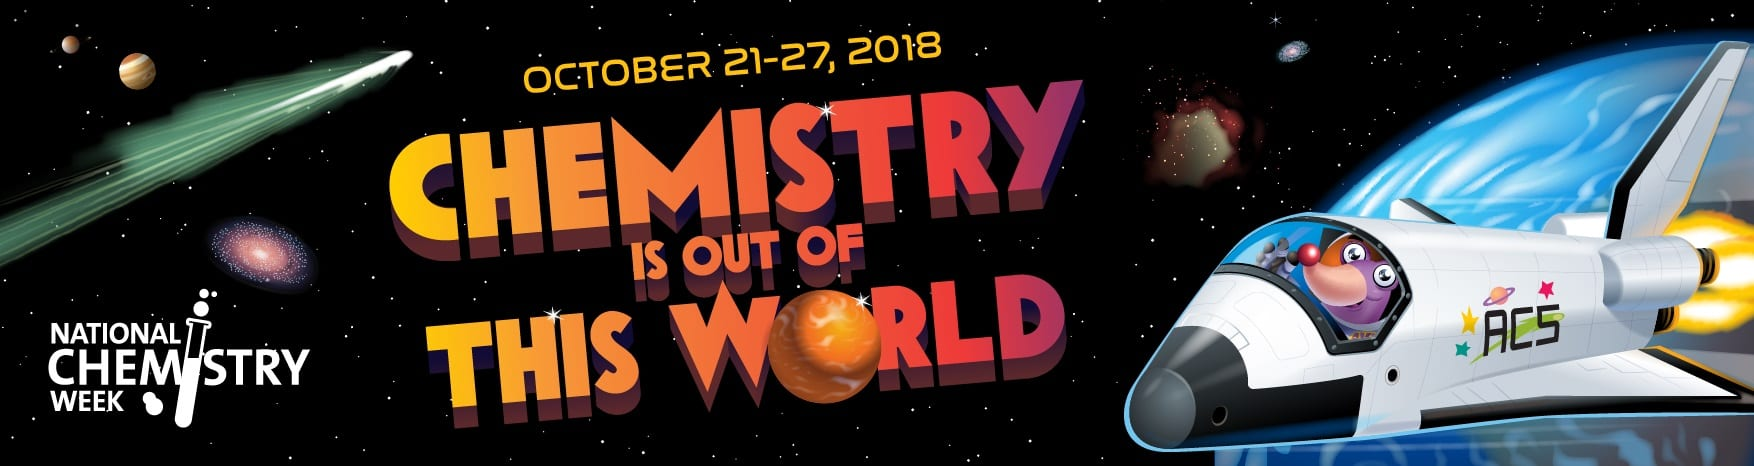 National Chemistry Week 2018